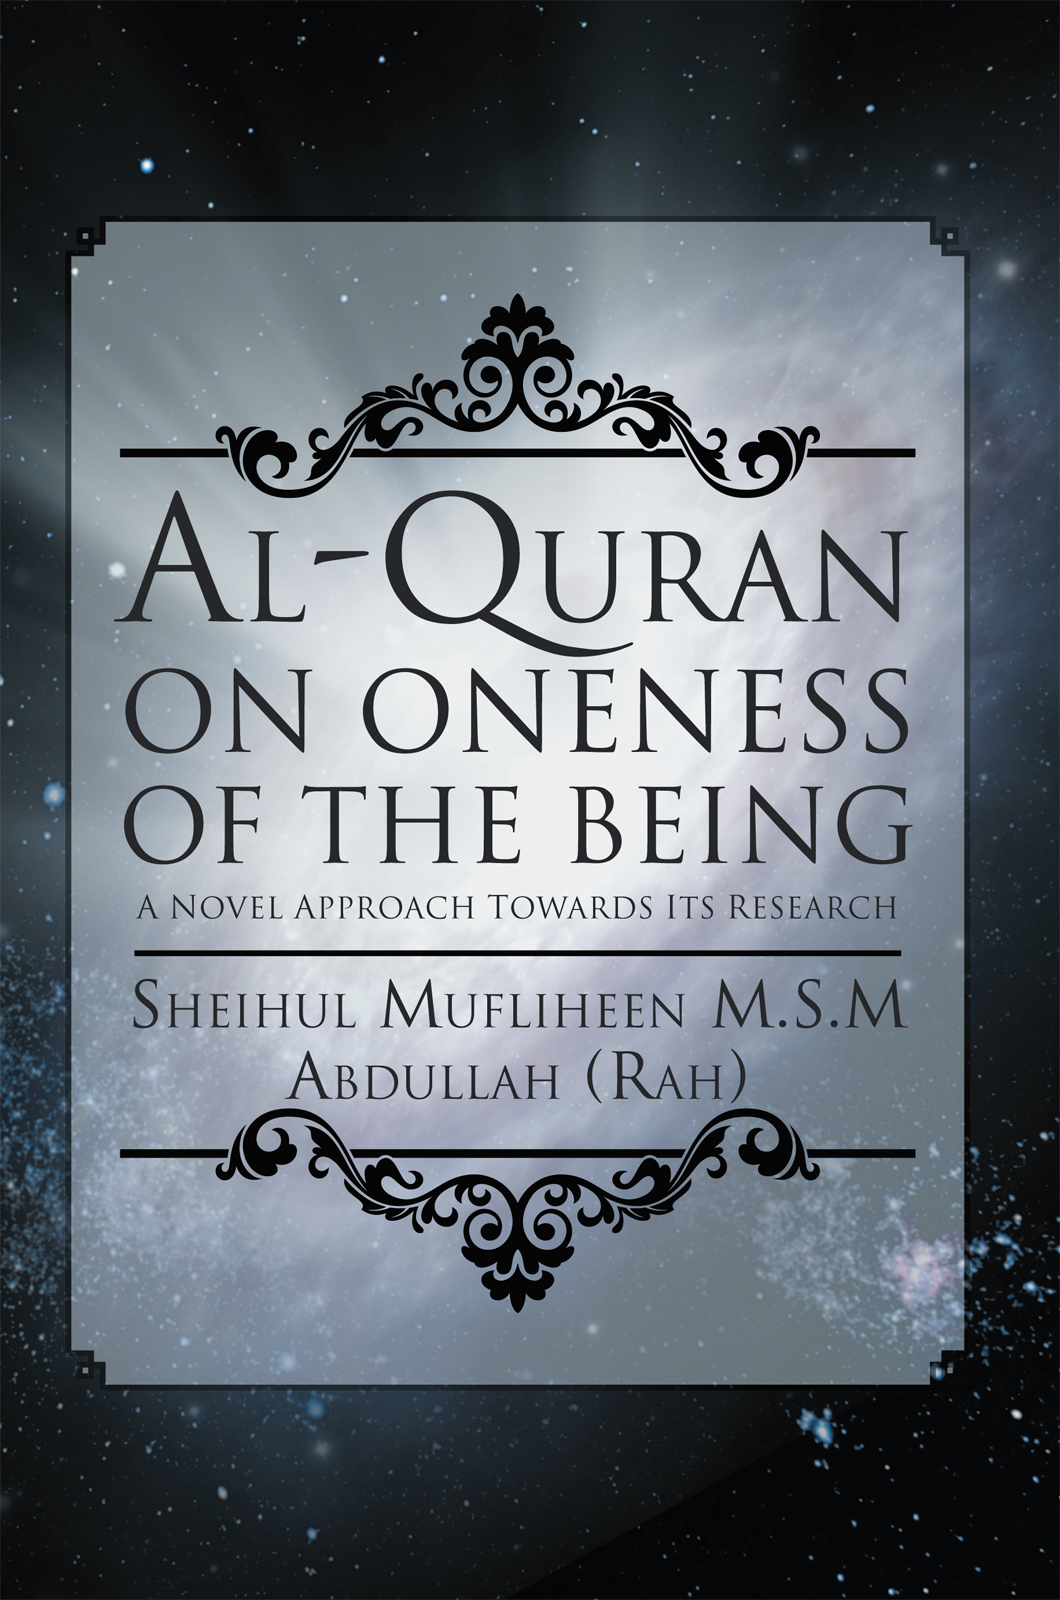 Al-Quran on Oneness of The Being By: Sheihul Mufliheen M.S.M Abdullah (Rah)